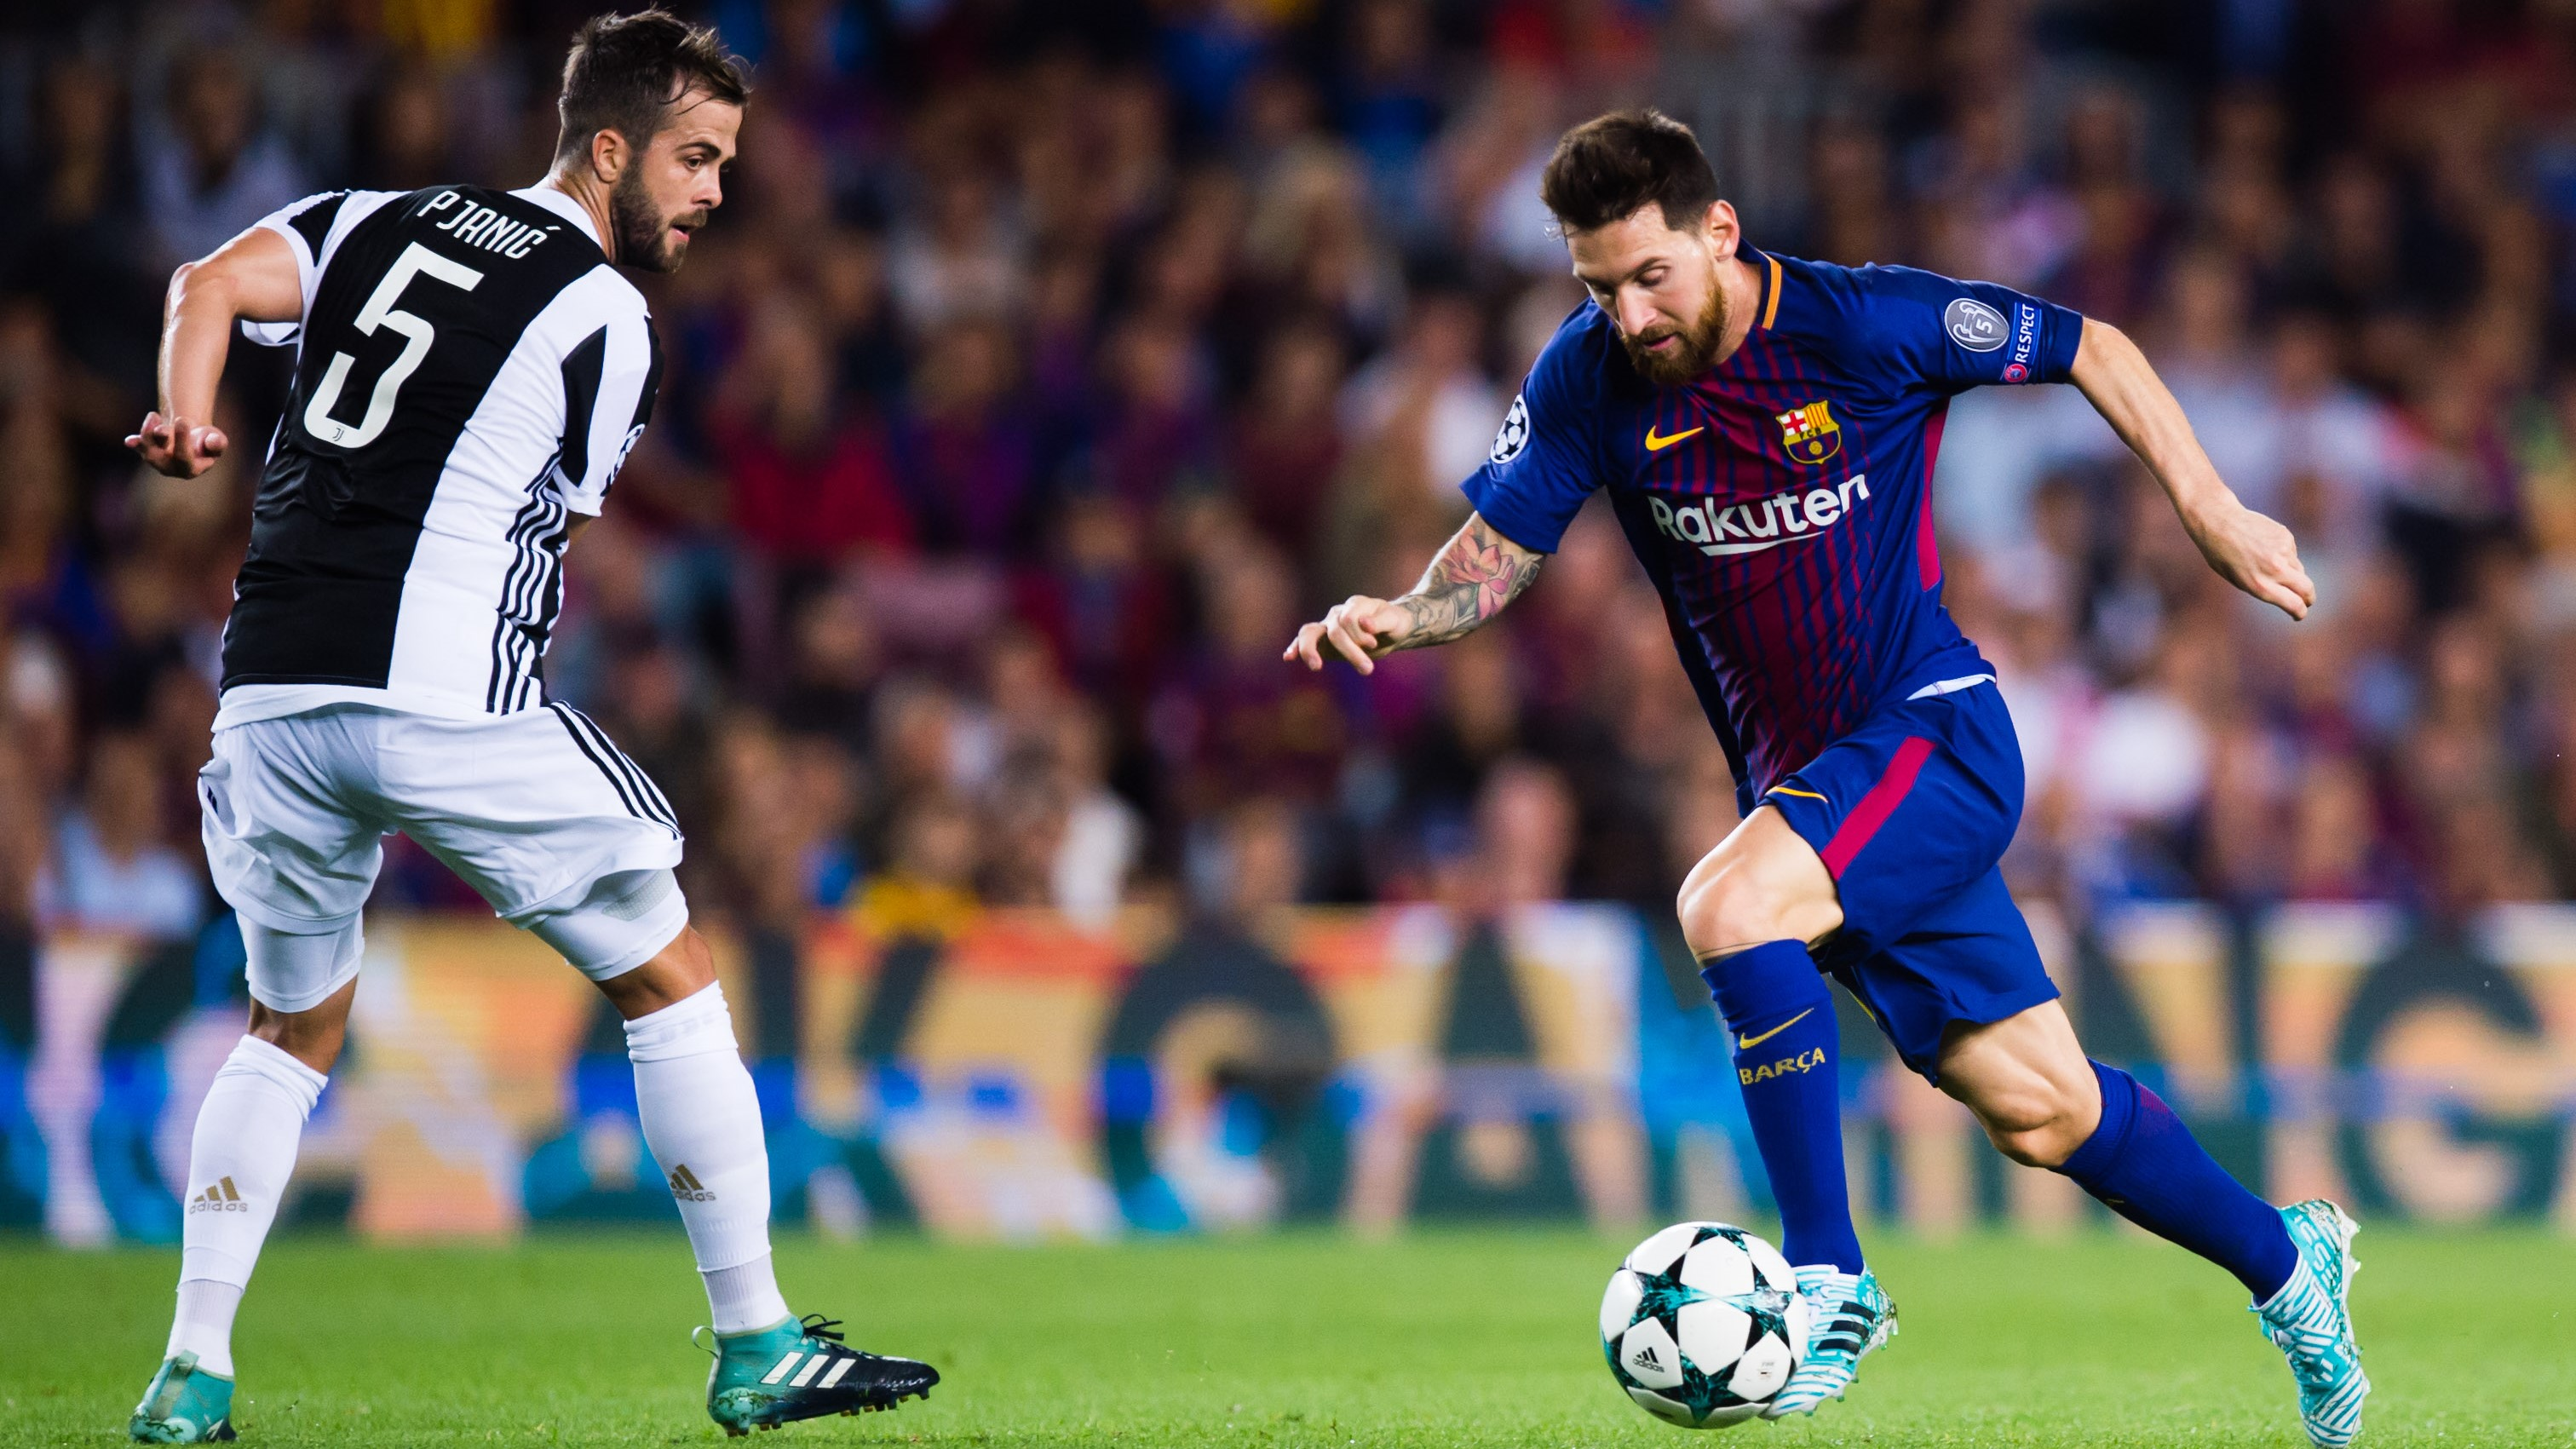 Barcelona Vs Juventus Live Stream How To Watch Champions League Anywhere Today Techradar